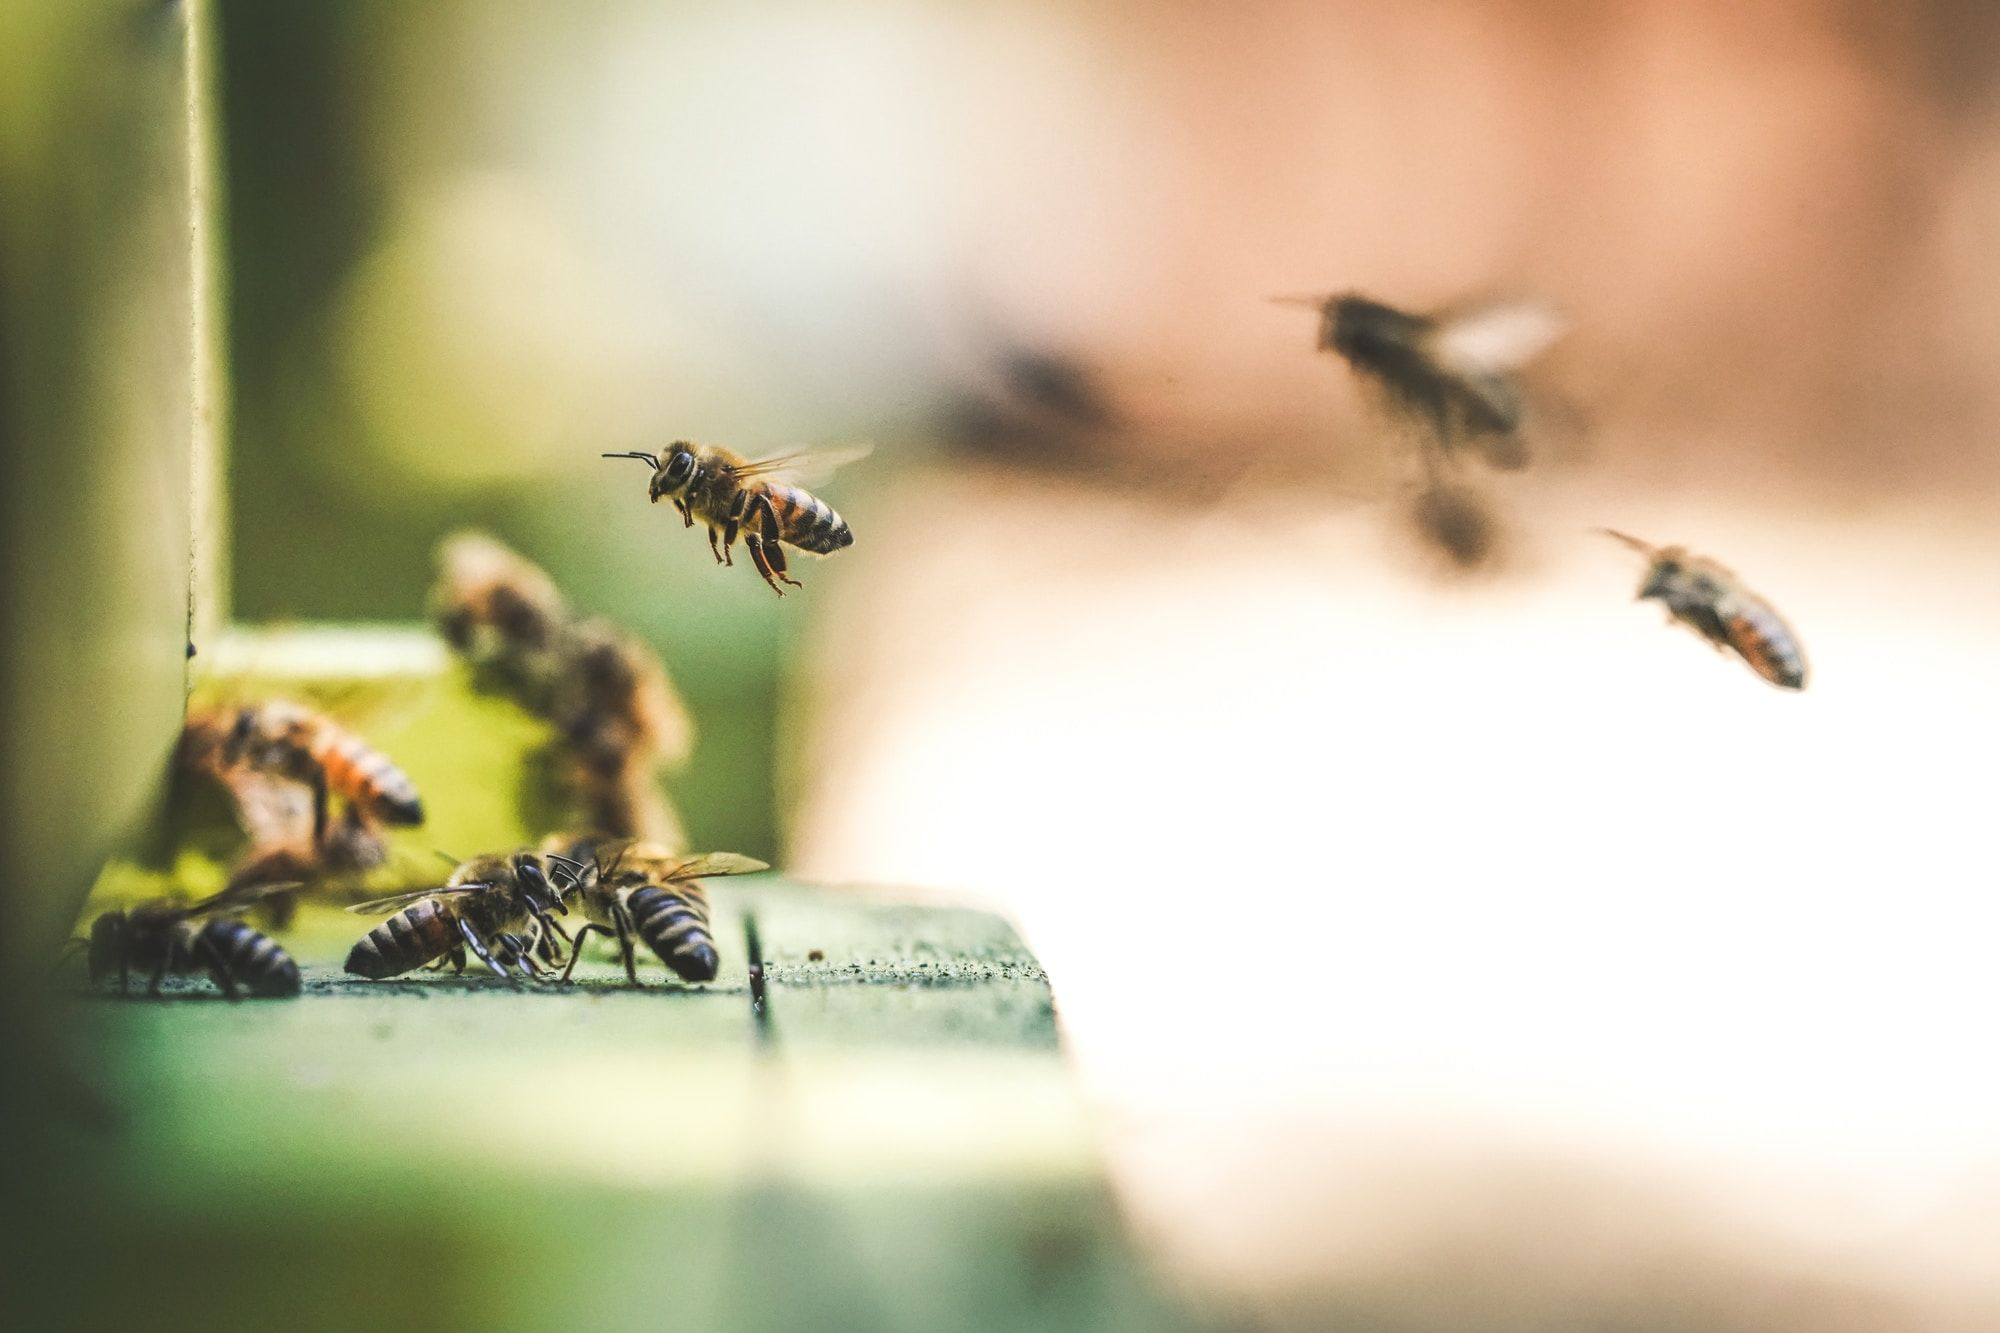 A small group of bees collecting nectar from nearby wildlife